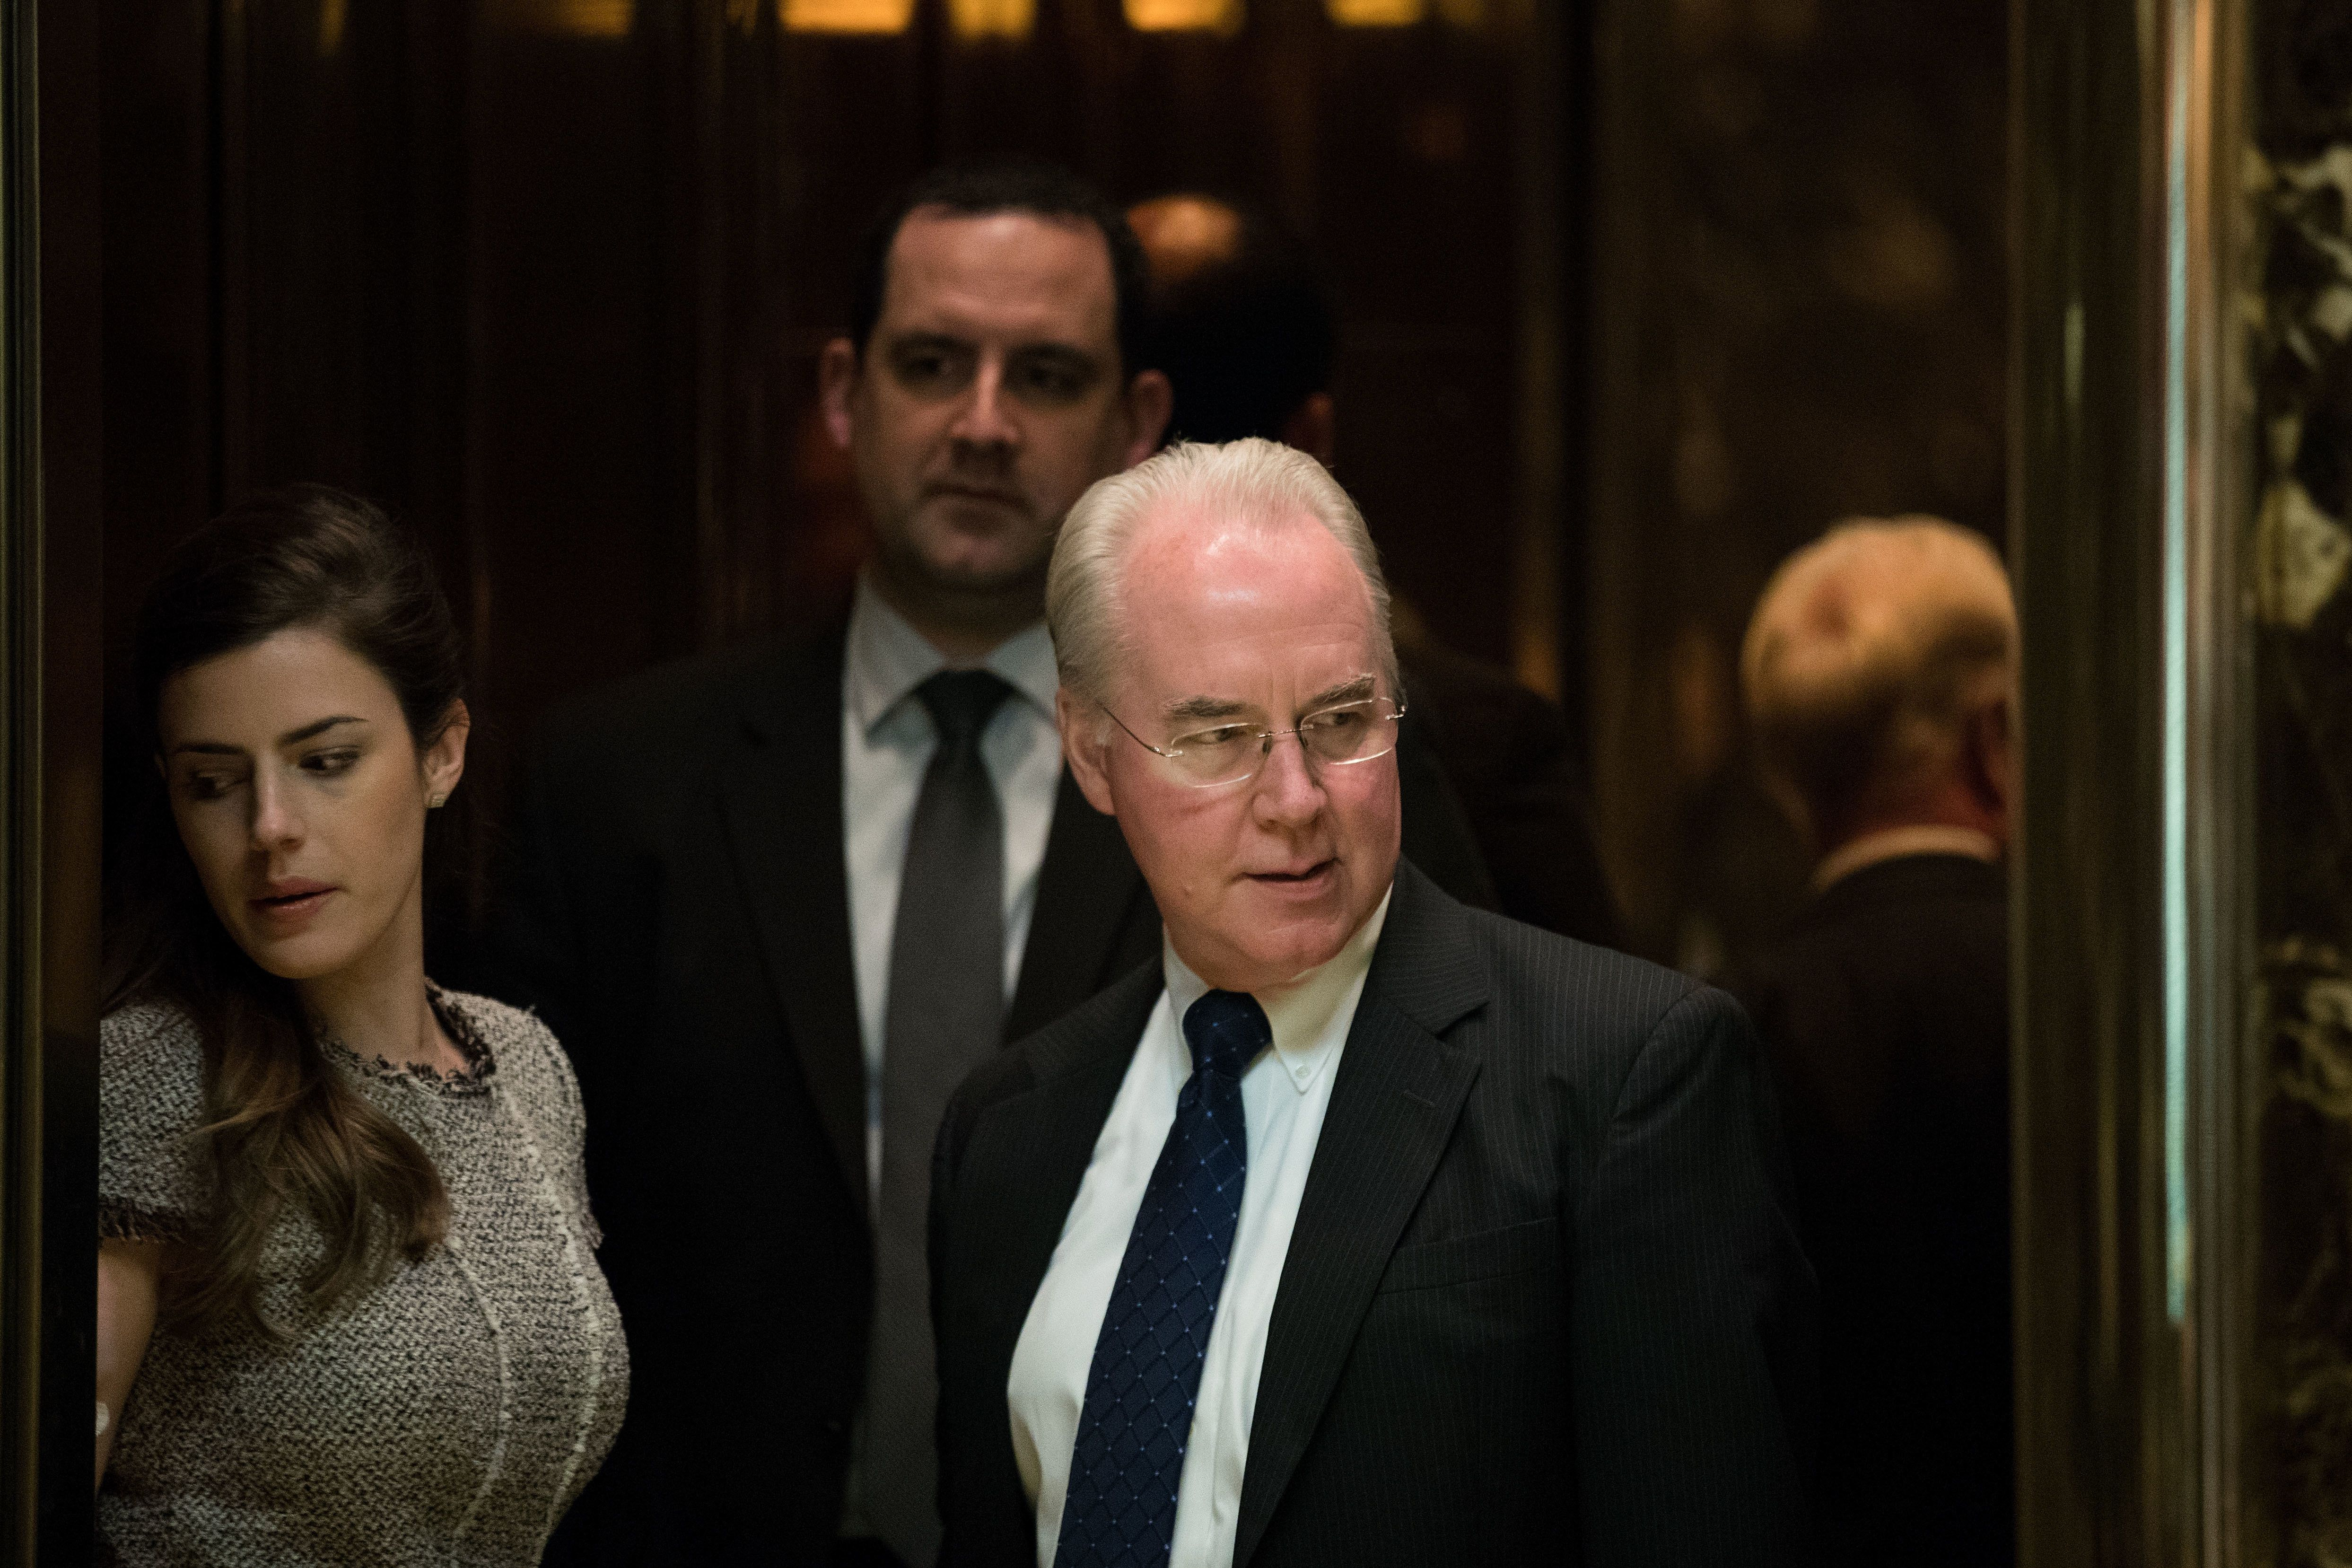 Trump's Pick For Health Secretary Signals He Is Dead Serious About Repealing